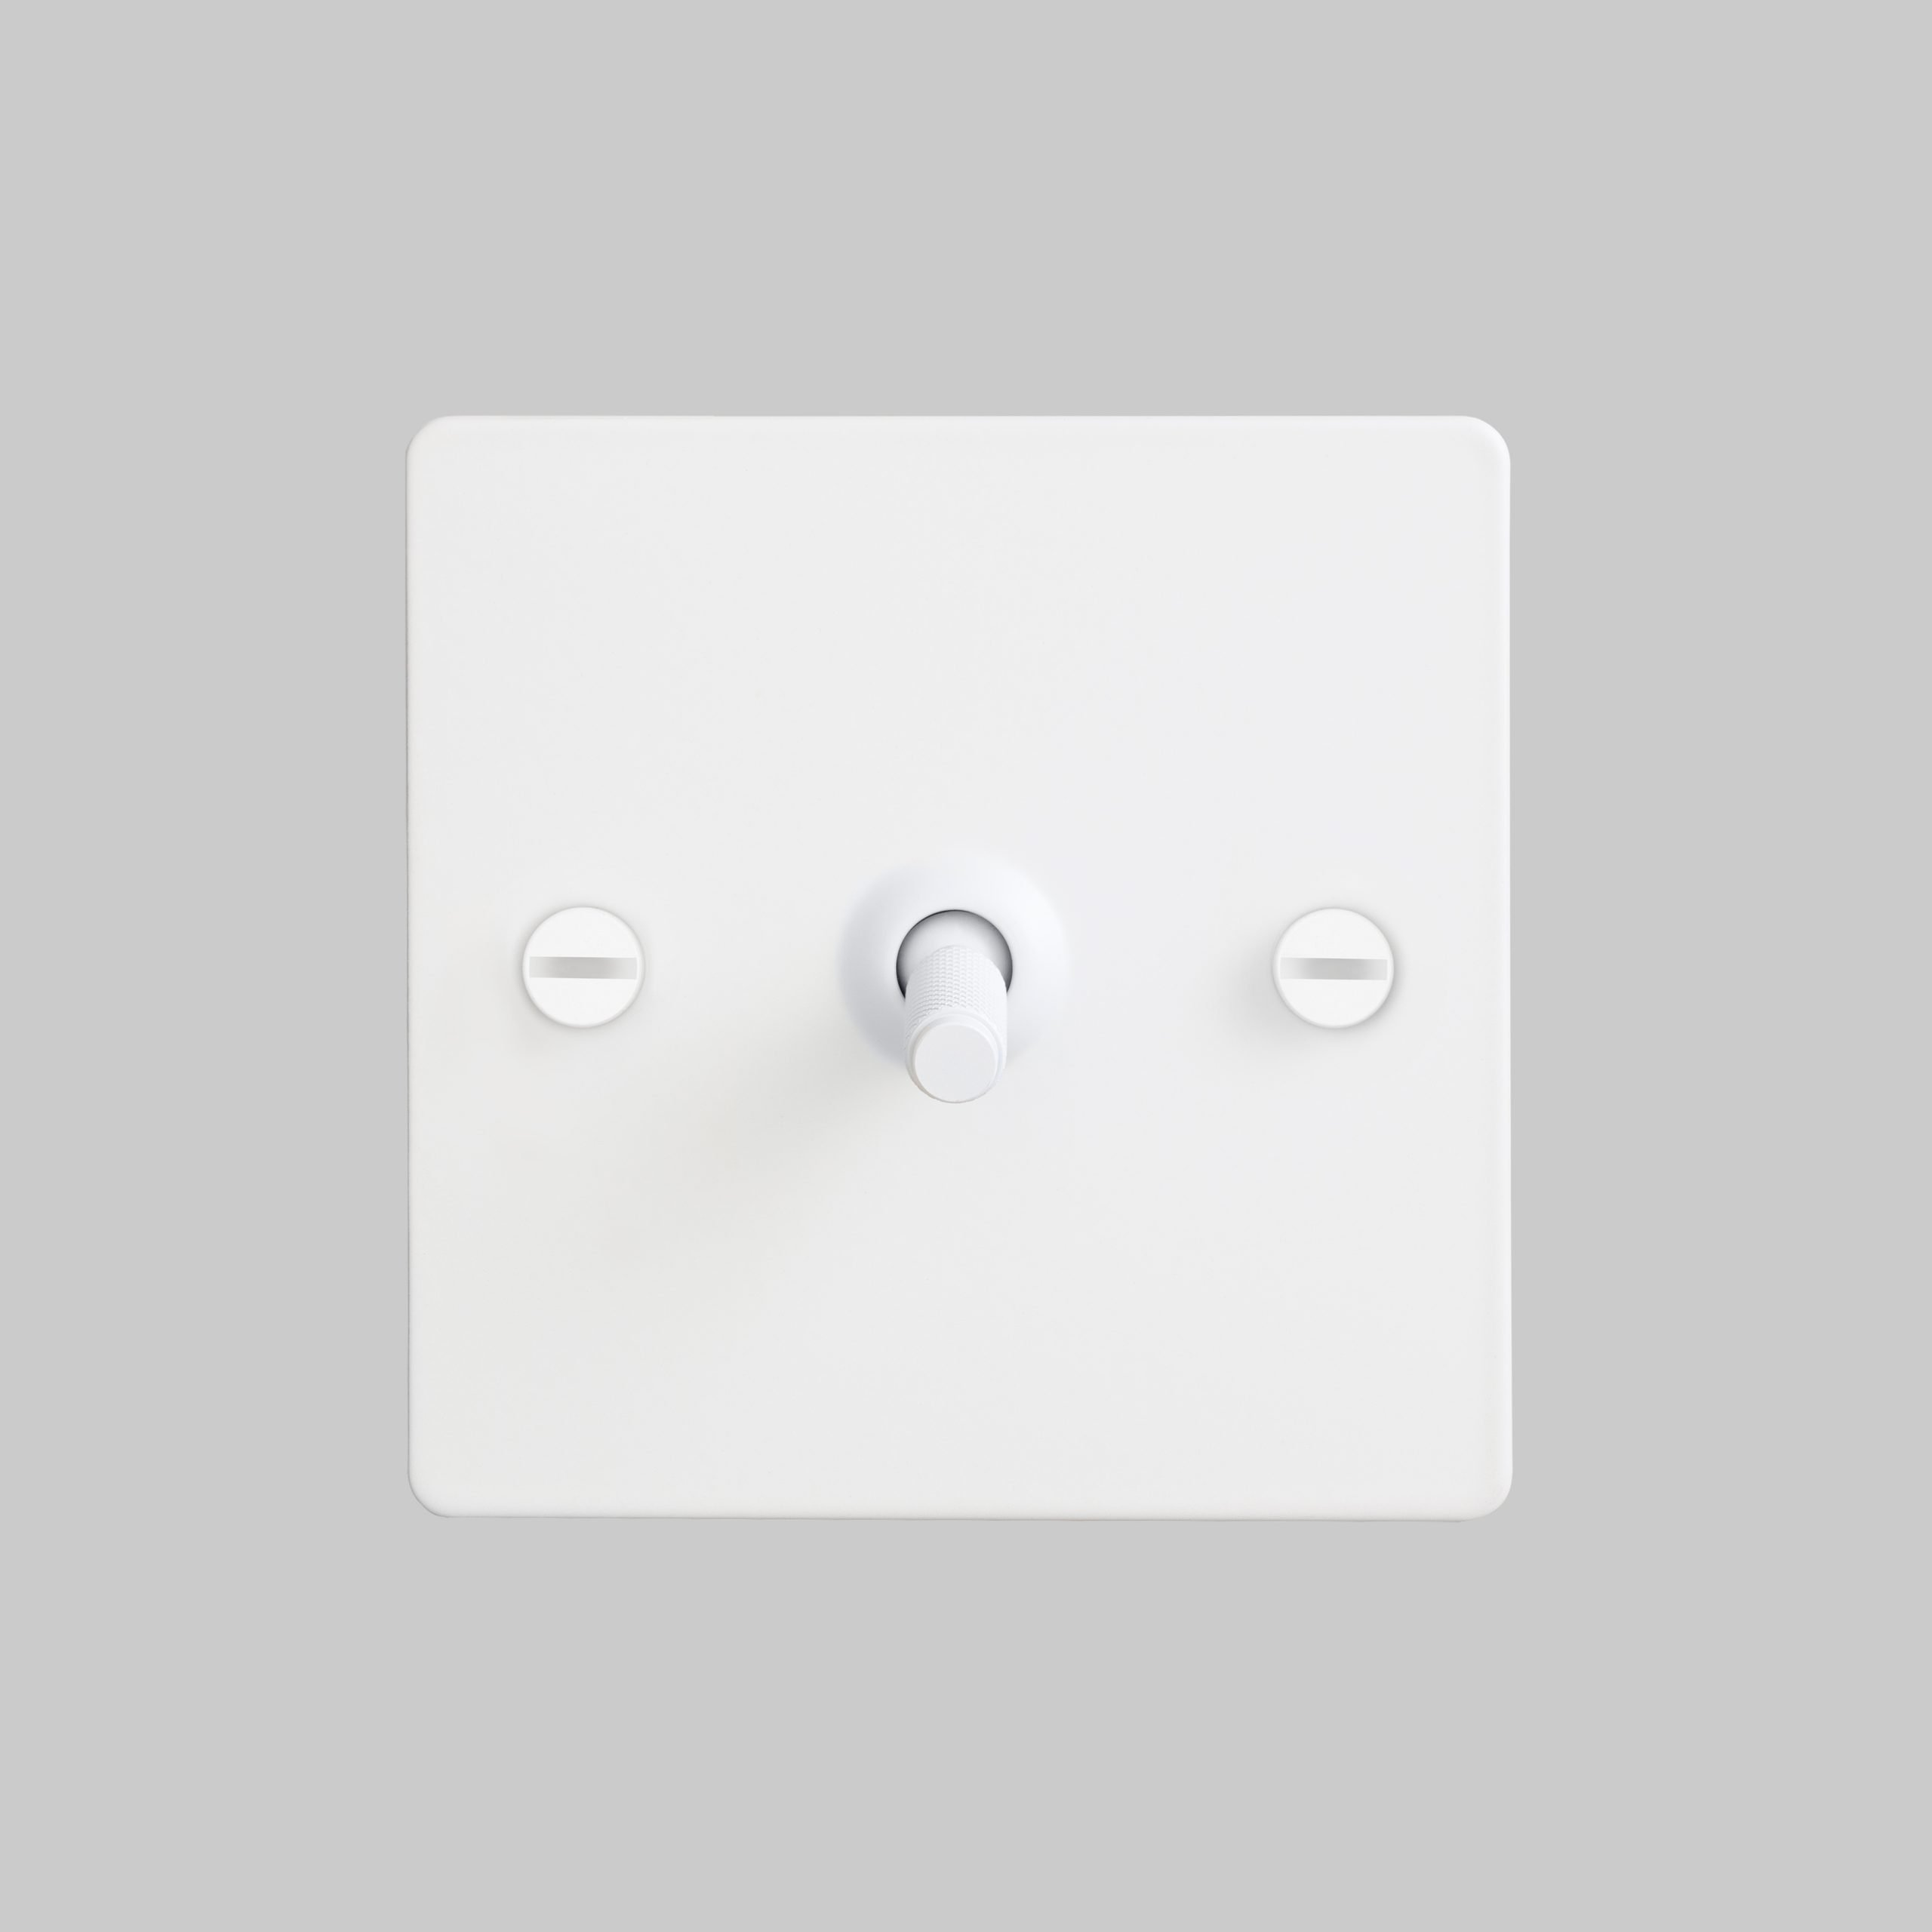 2. 1G_Toggle_Front_White